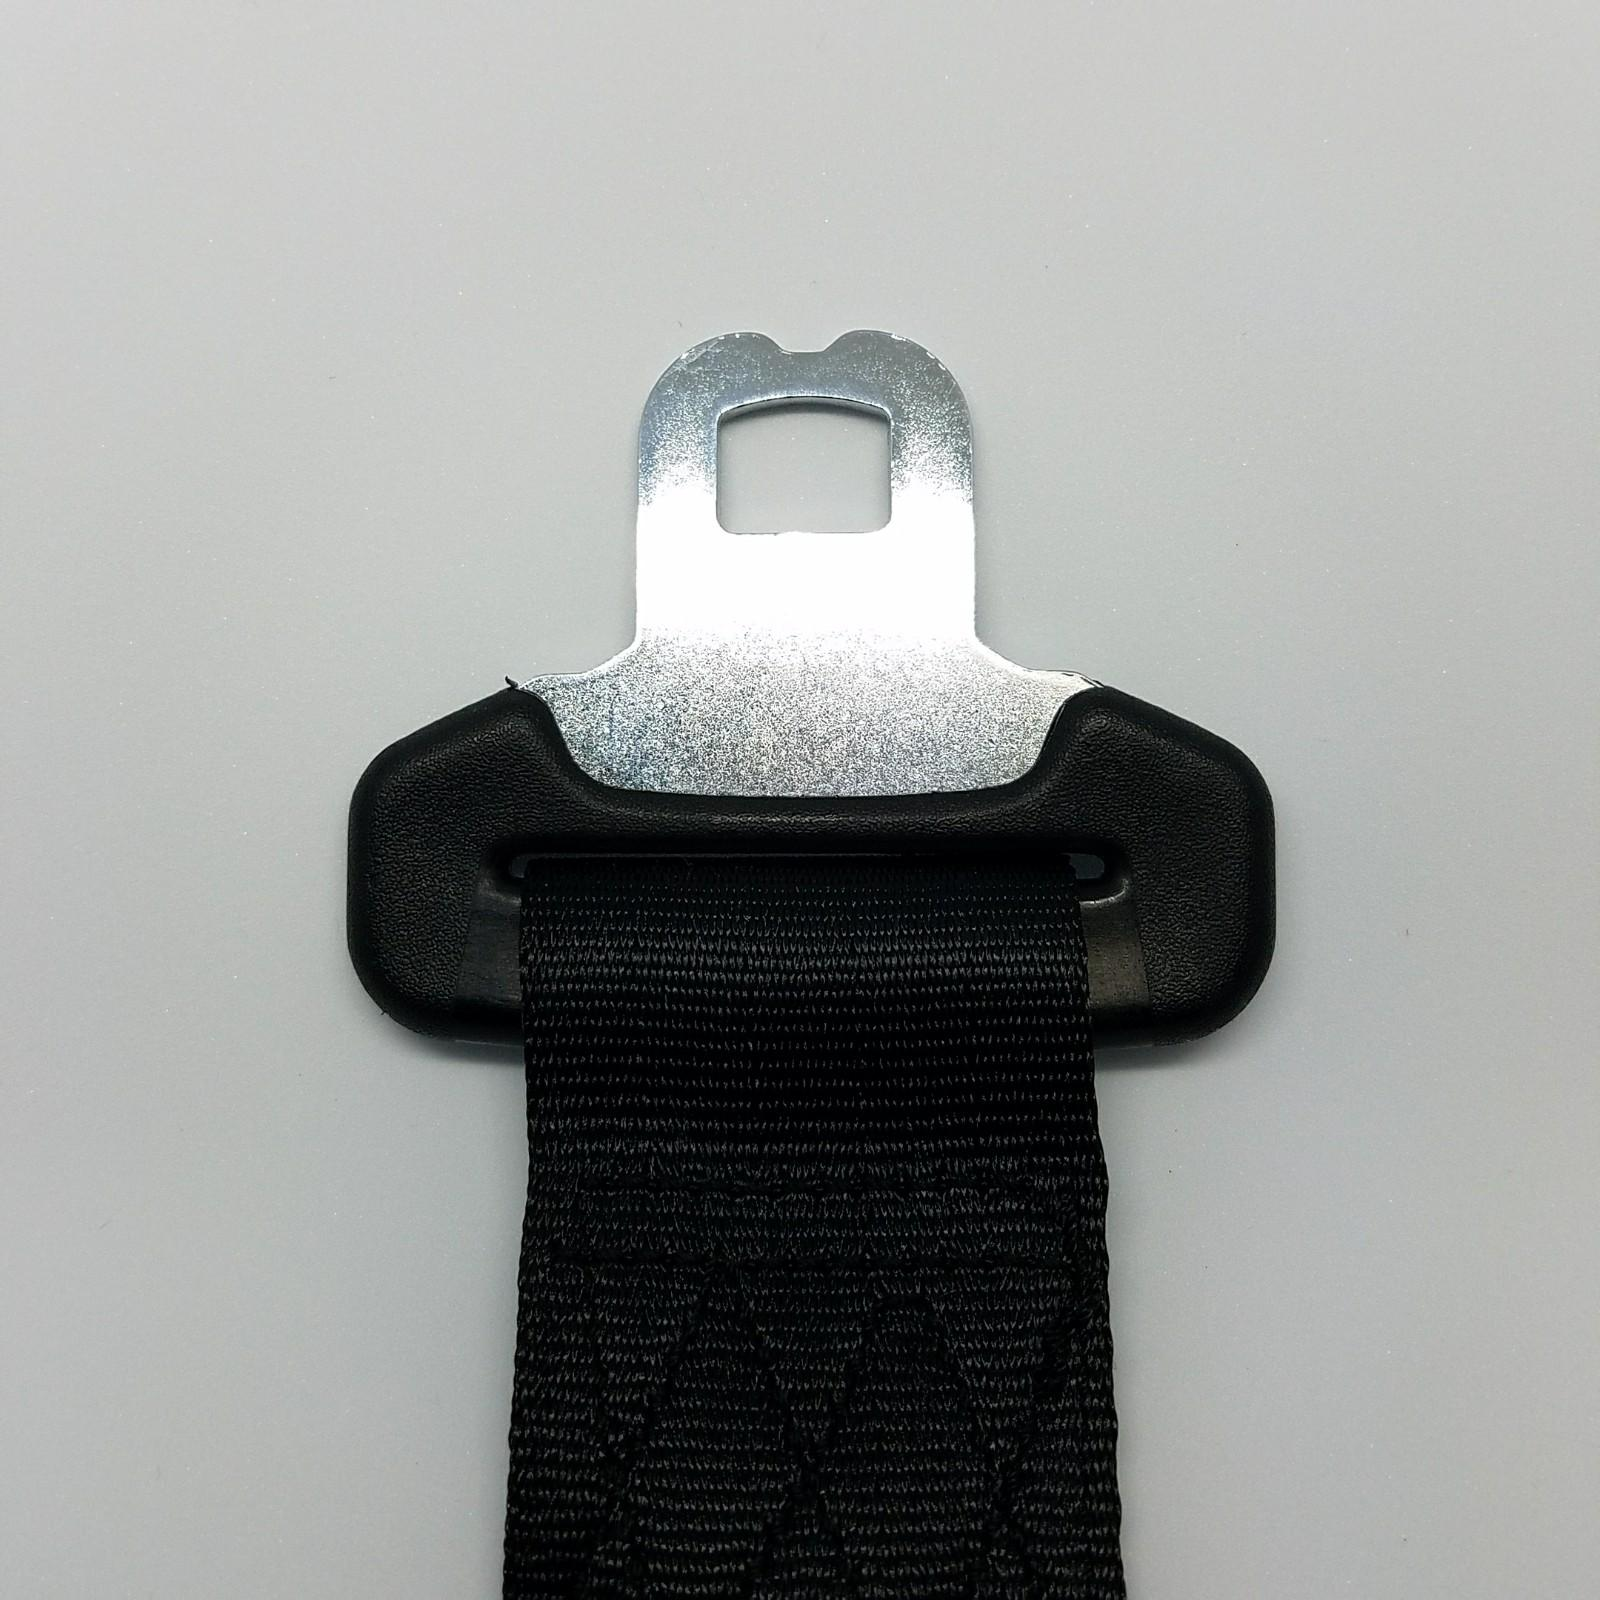 Buy Seat belt Extender width 30 mm ref type – E online at Lowest Prices